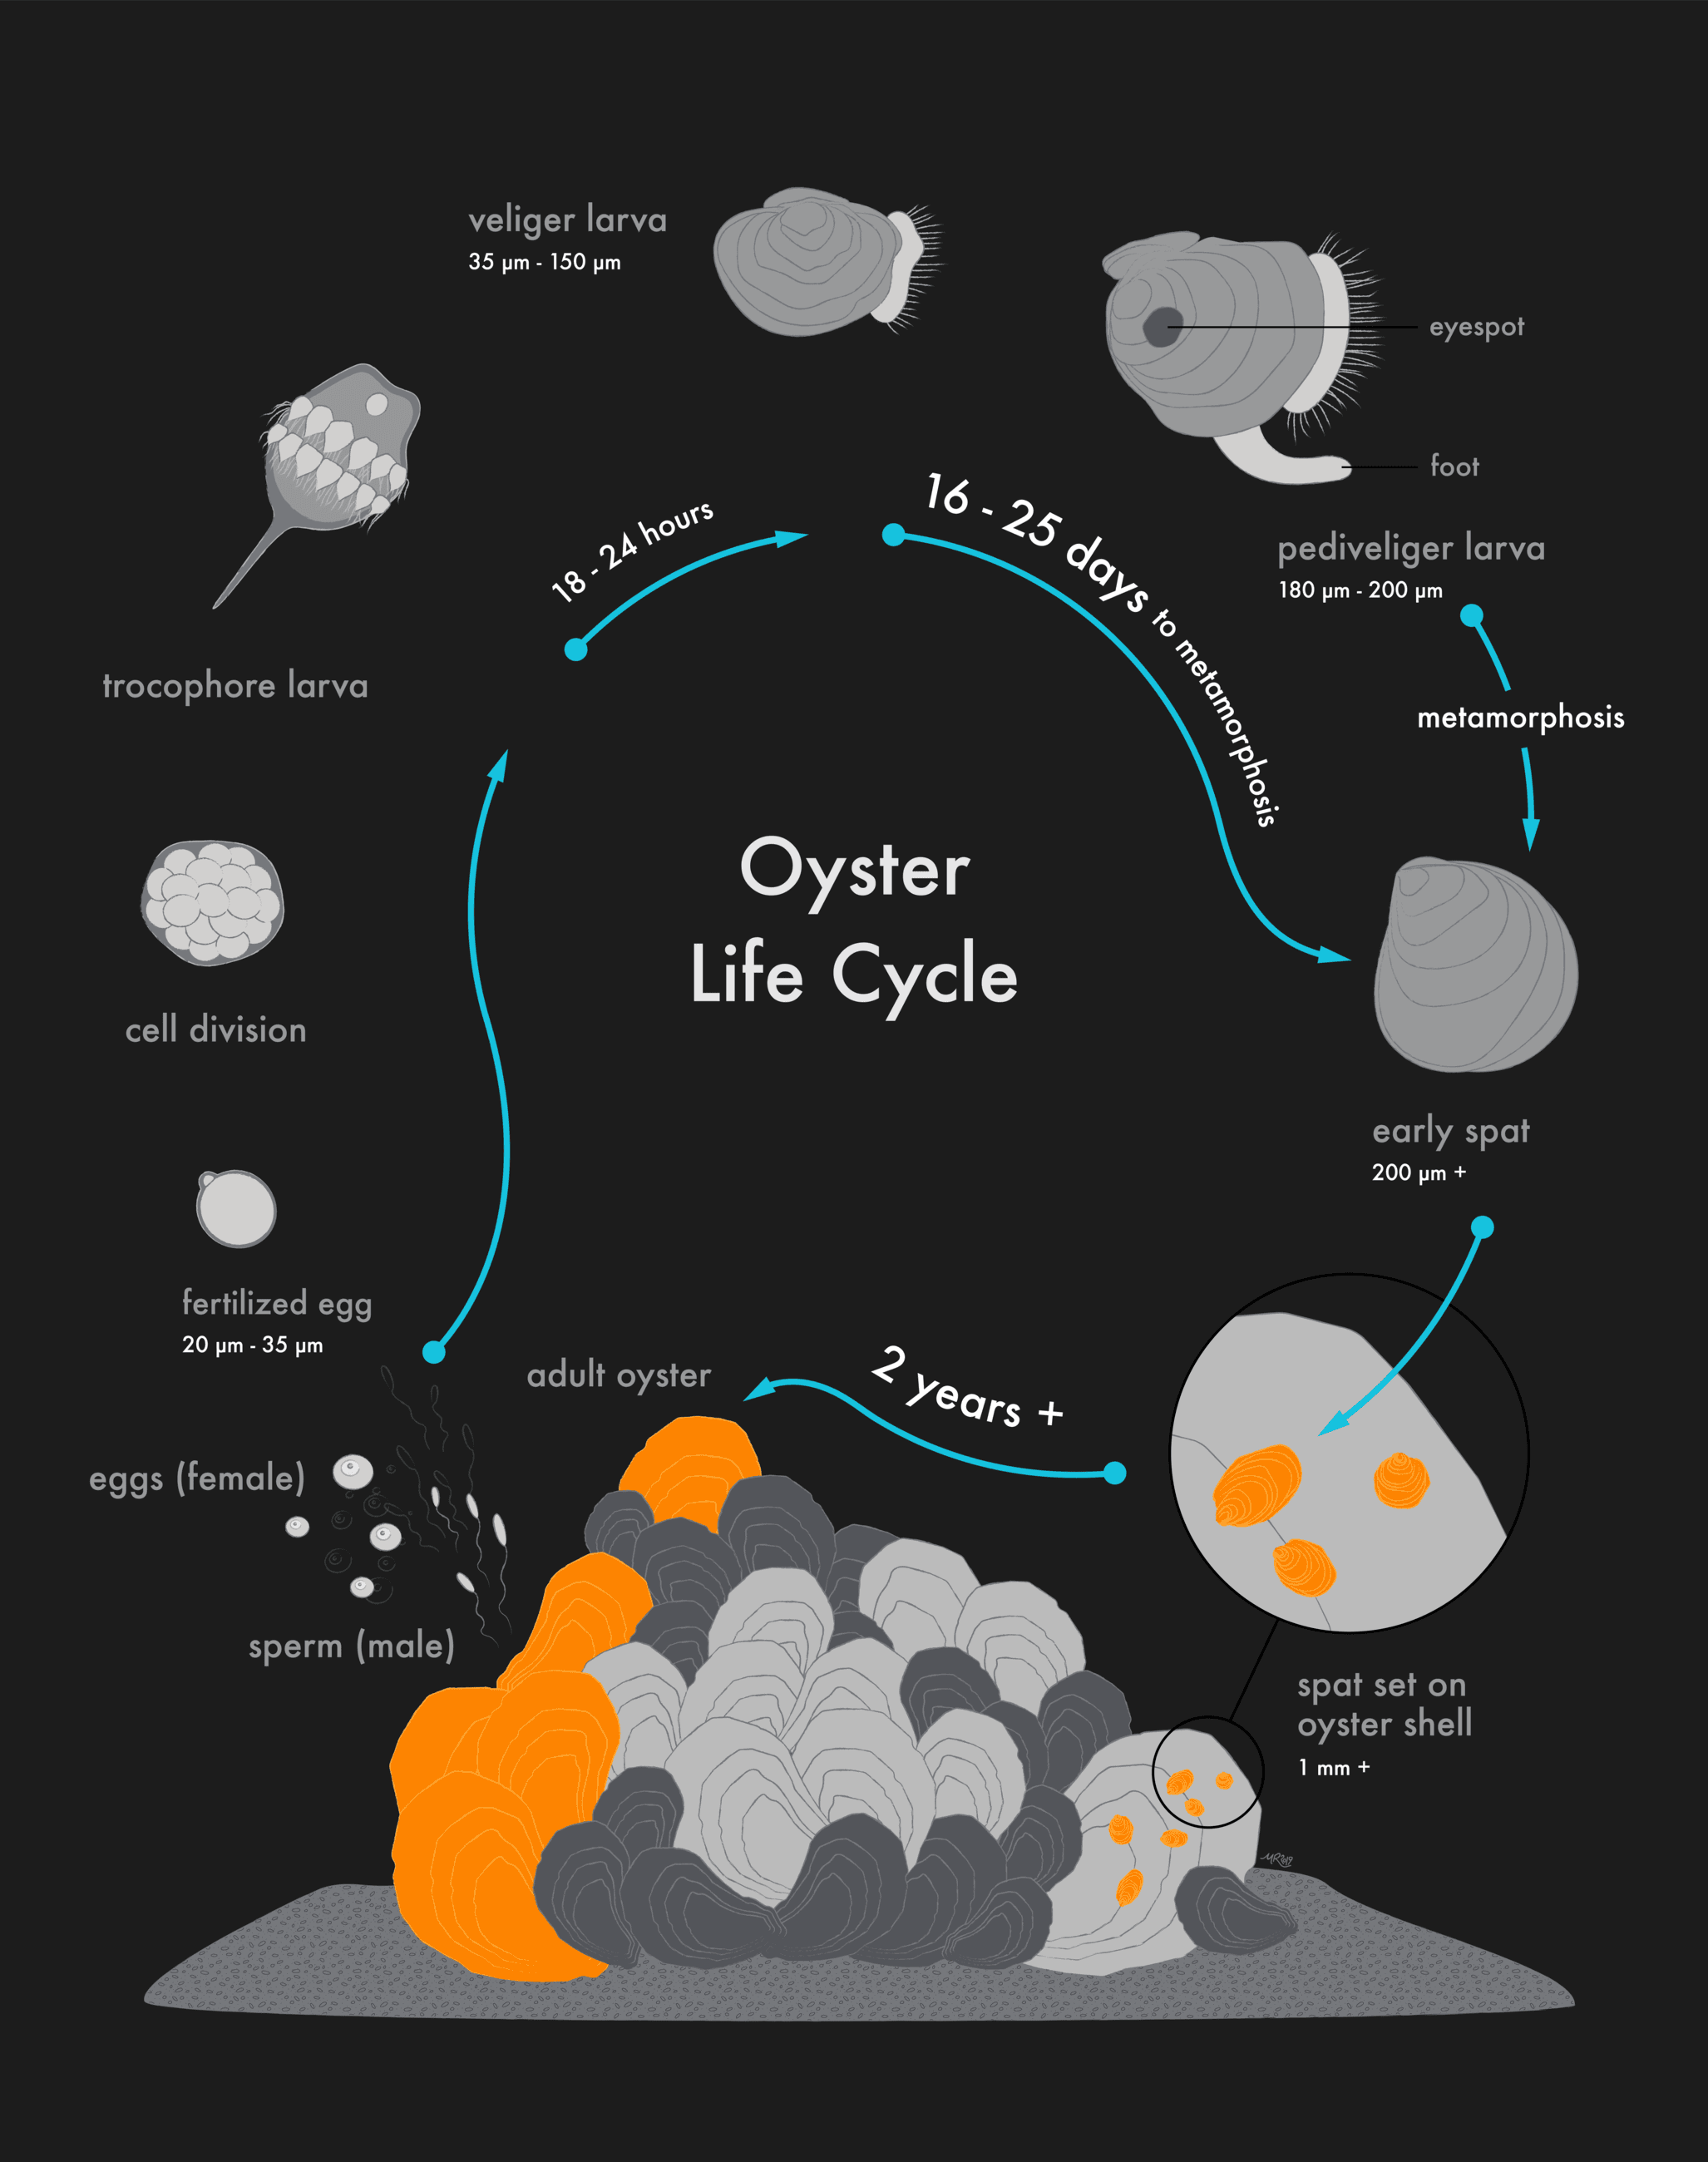 oyster life cycle- Morgan Raith